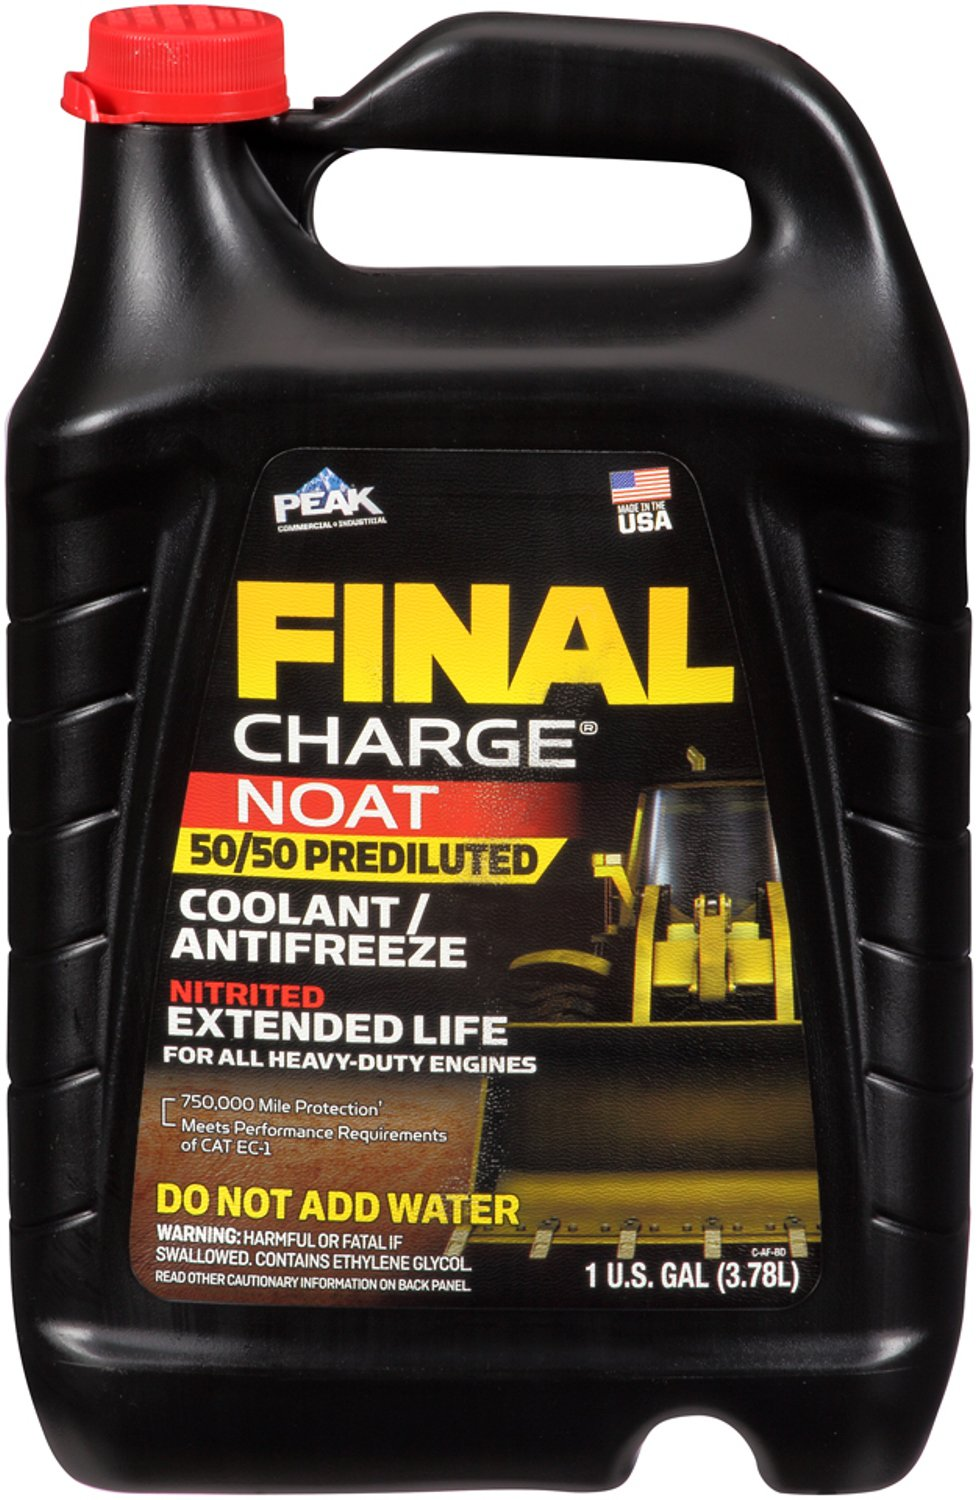 Details about Peak Final Charge Extended Life Antifreeze 50/50 FXA053